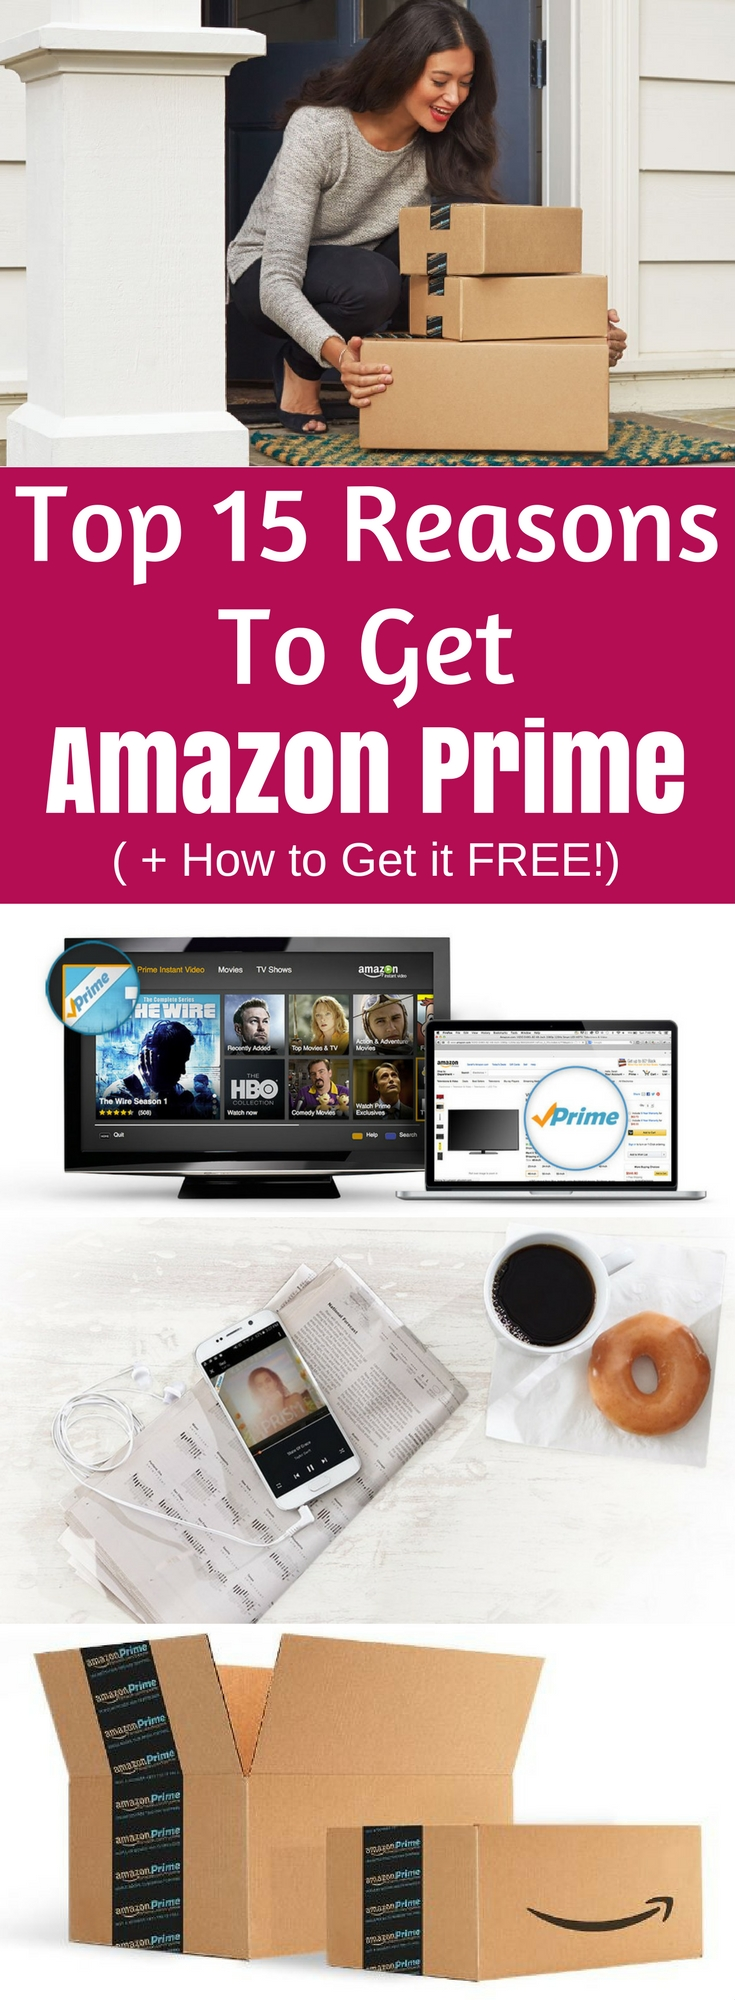 Reasons To Get Amazon Prime + How to Get it FREE (1)